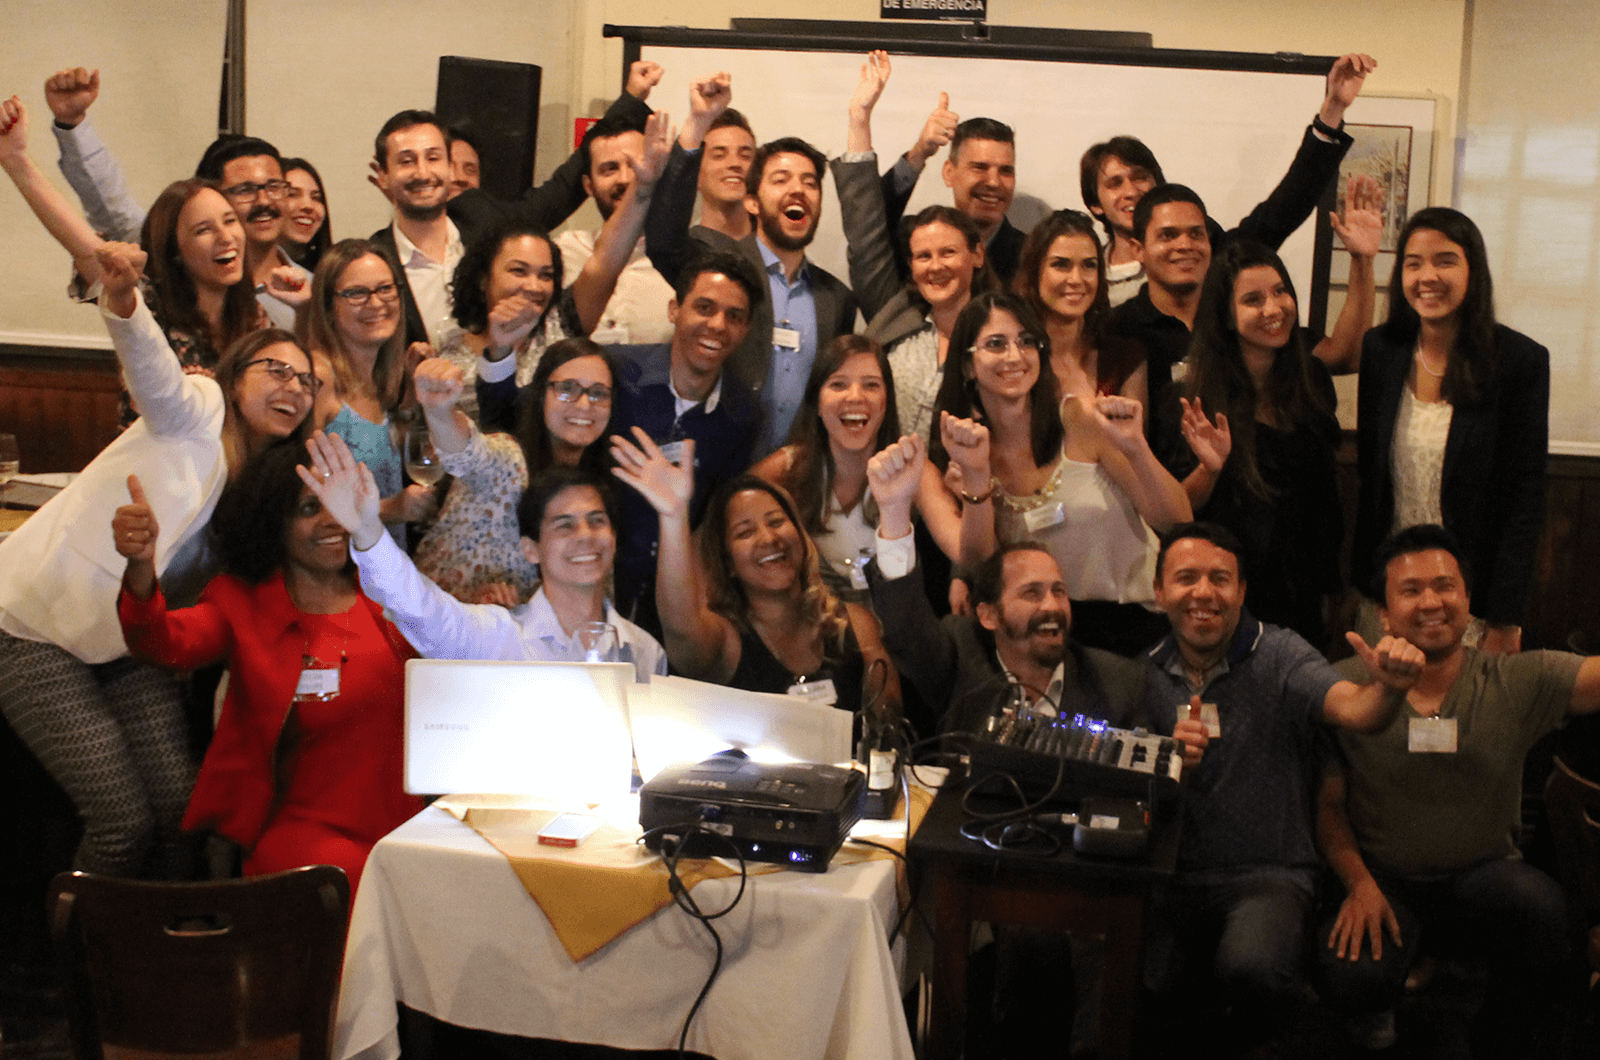 Group of Toastmasters posing with arms in the air